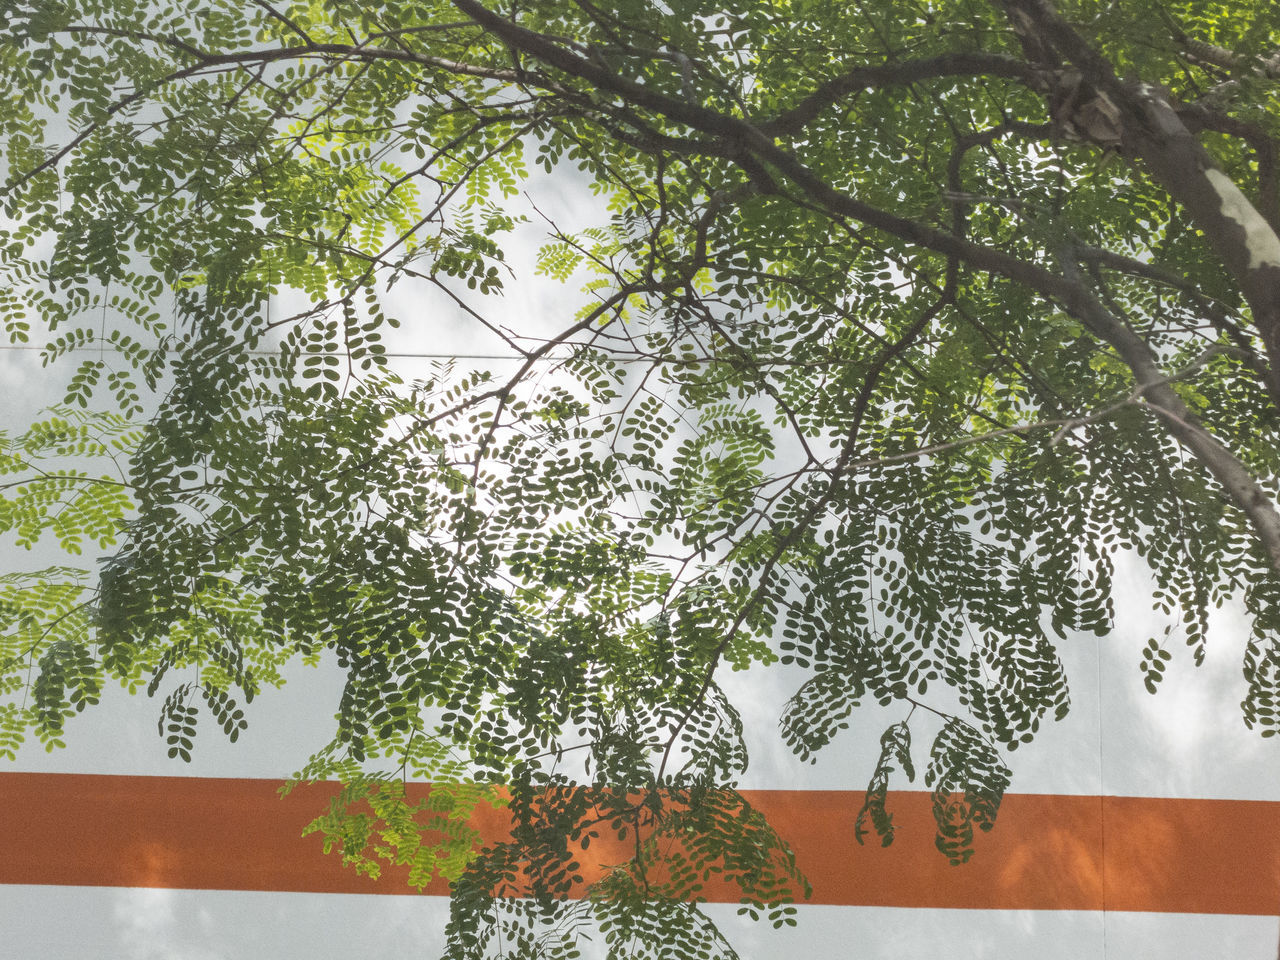 tree, growth, branch, real people, day, green color, nature, outdoors, one person, close-up, beauty in nature, people